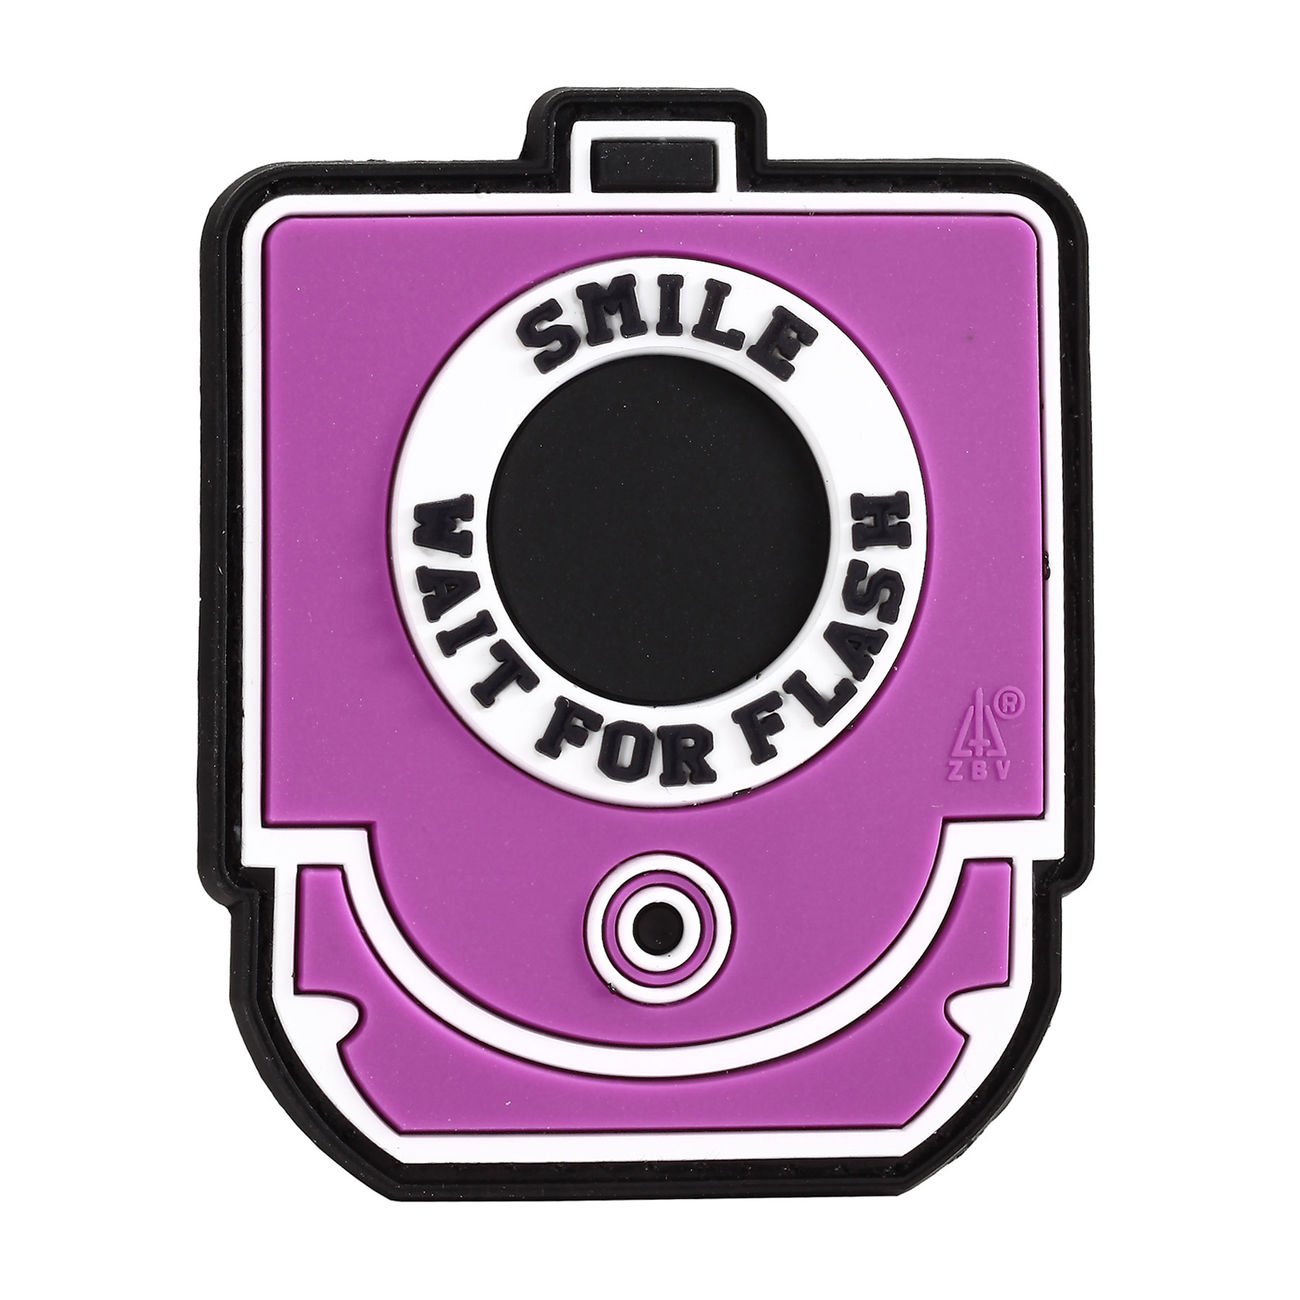 3D Rubber Patch Smile and Wait for Flash pink 0